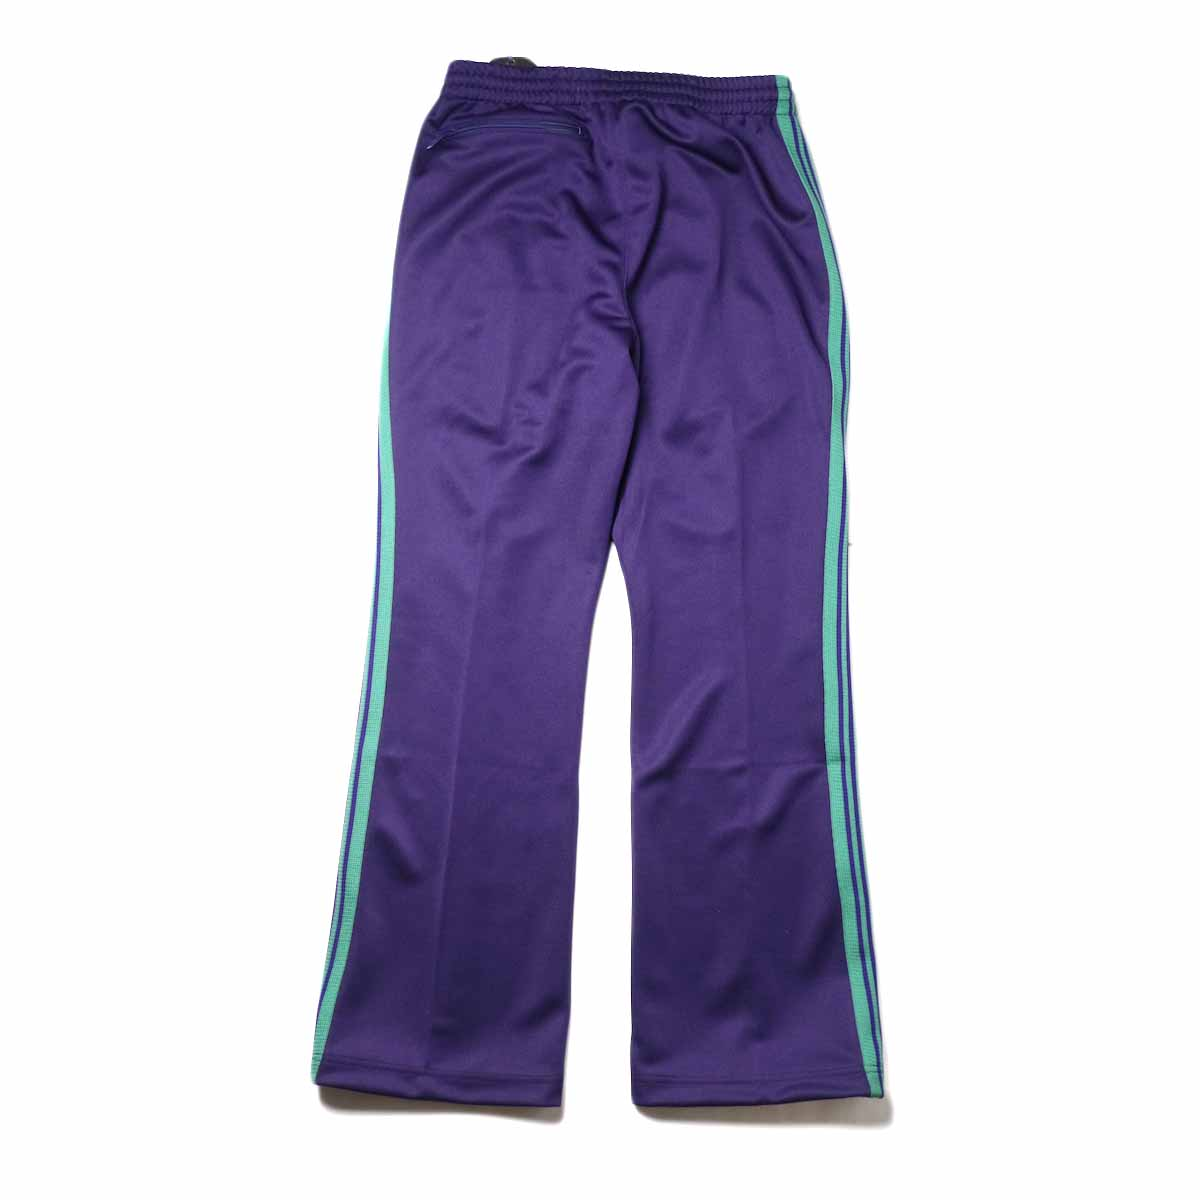 Needles / Boot-cut Track Pants -Poly Smooth (Eggplant背面